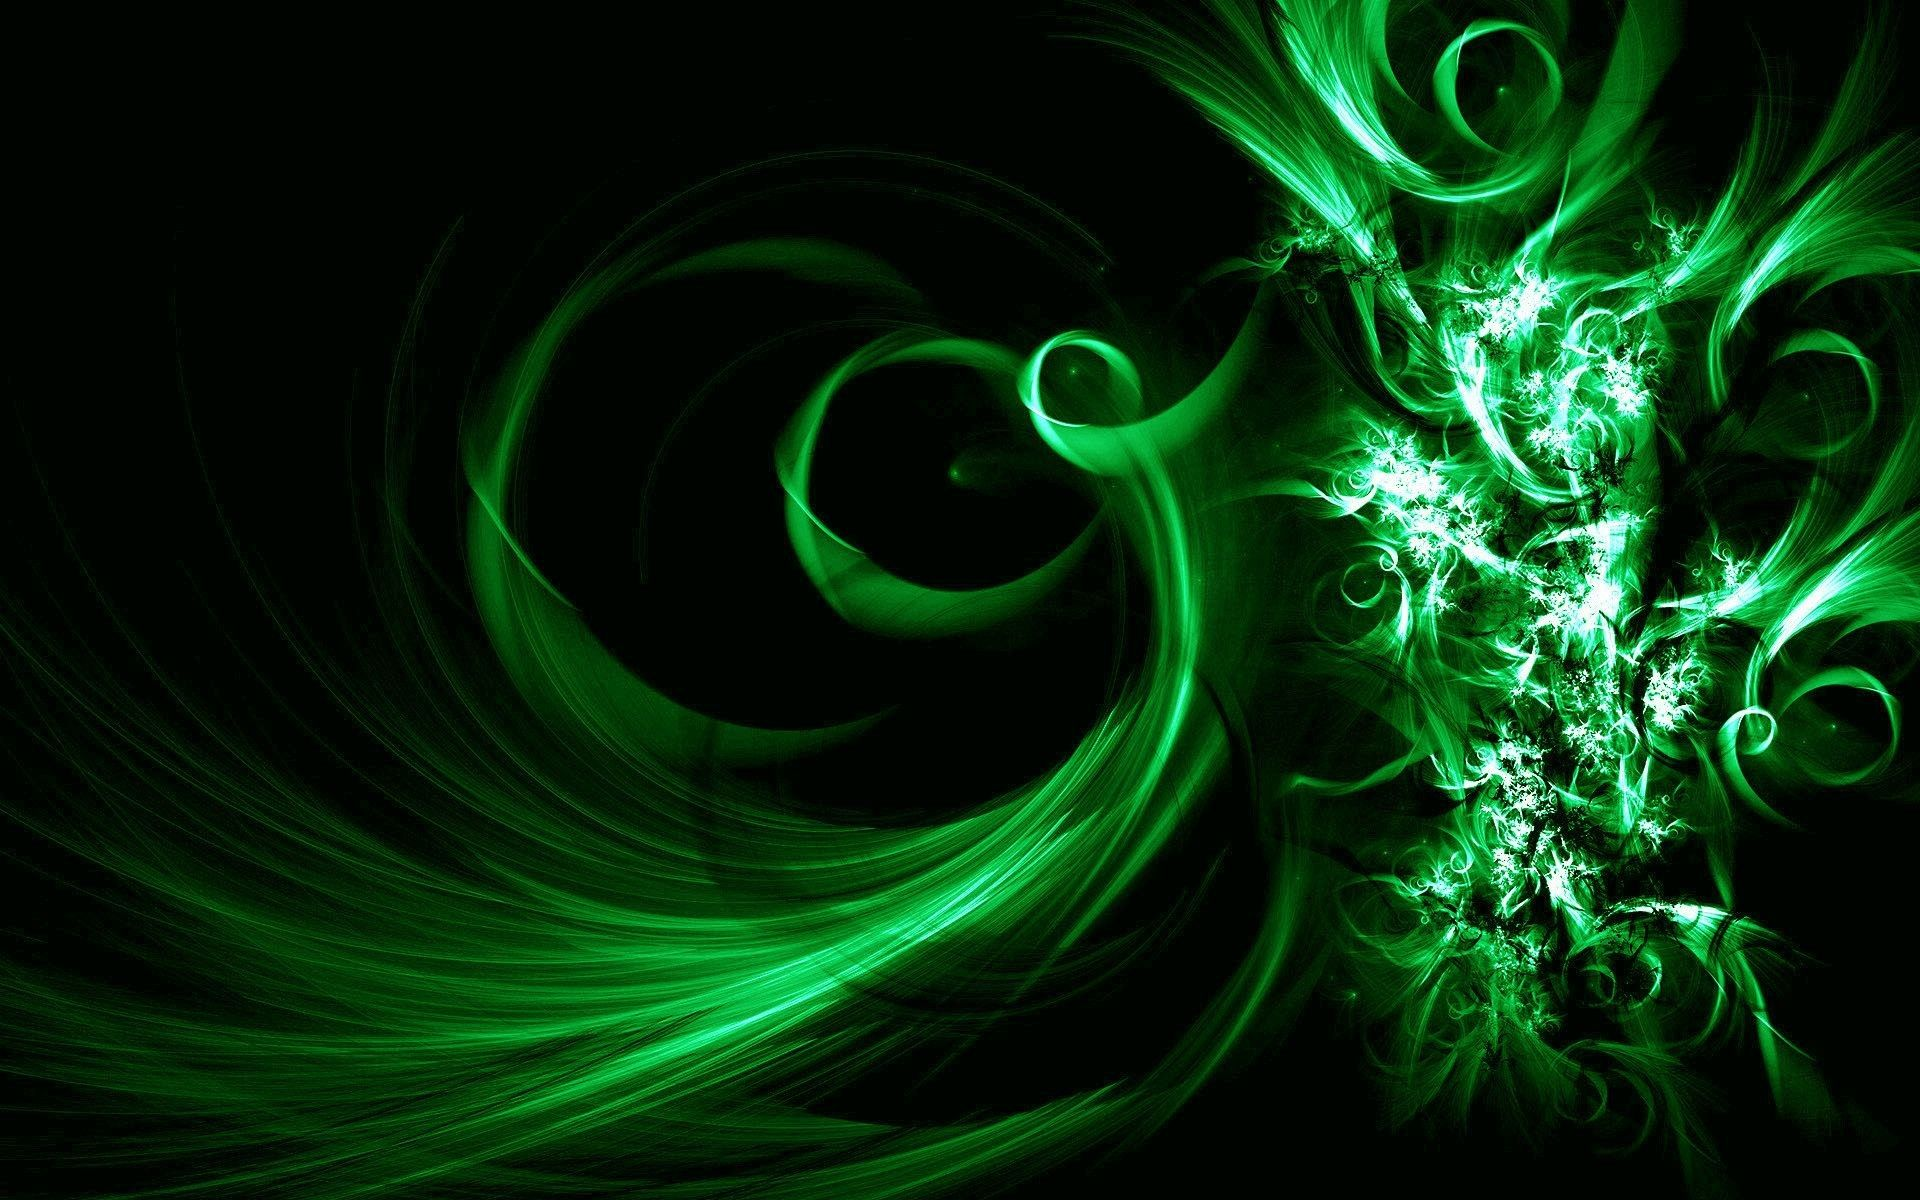 1920x1200 Black and Green Wallpaper (75+ images)